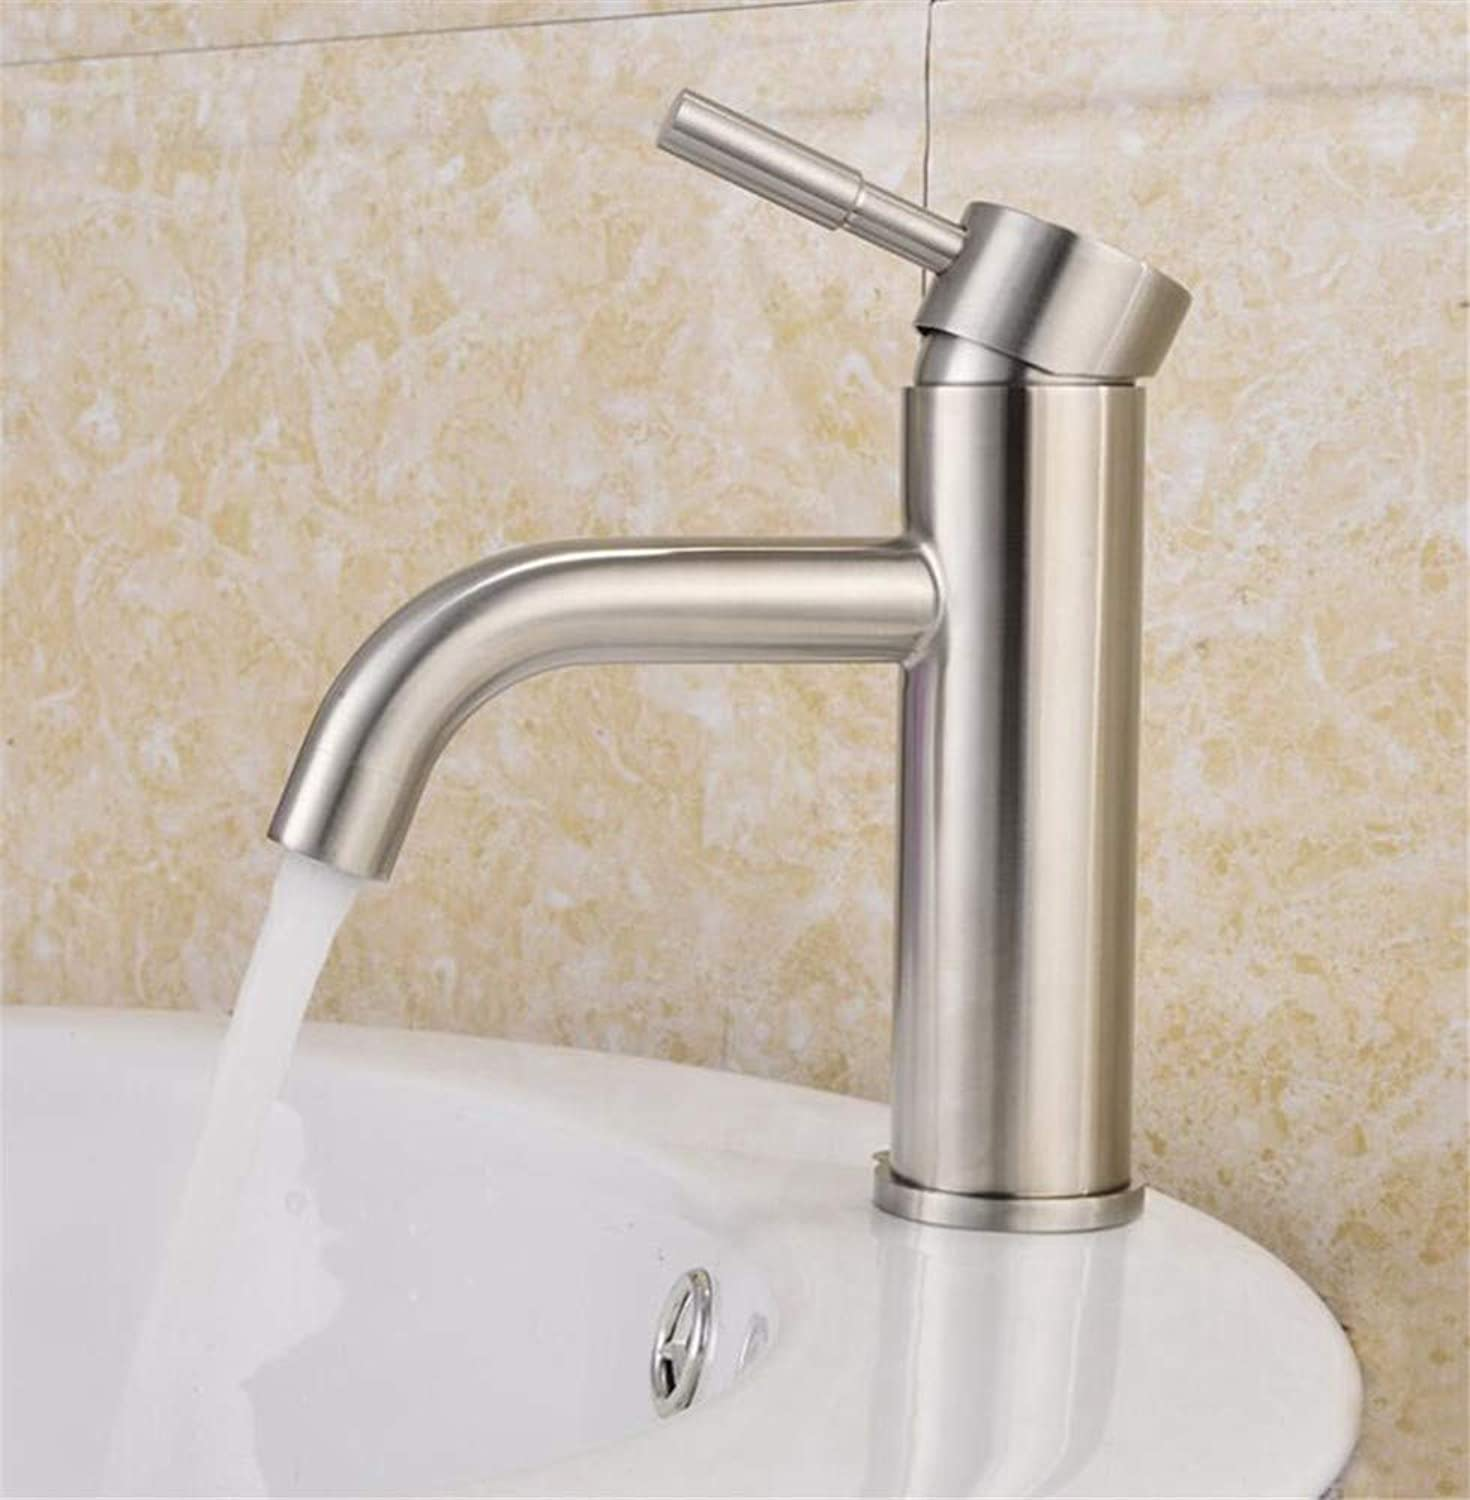 Bathroom Sink Basin Lever Mixer Tap Sus304 Stainless Steel Single-Hole Cold-Hot Mixing Table and Basin Faucet